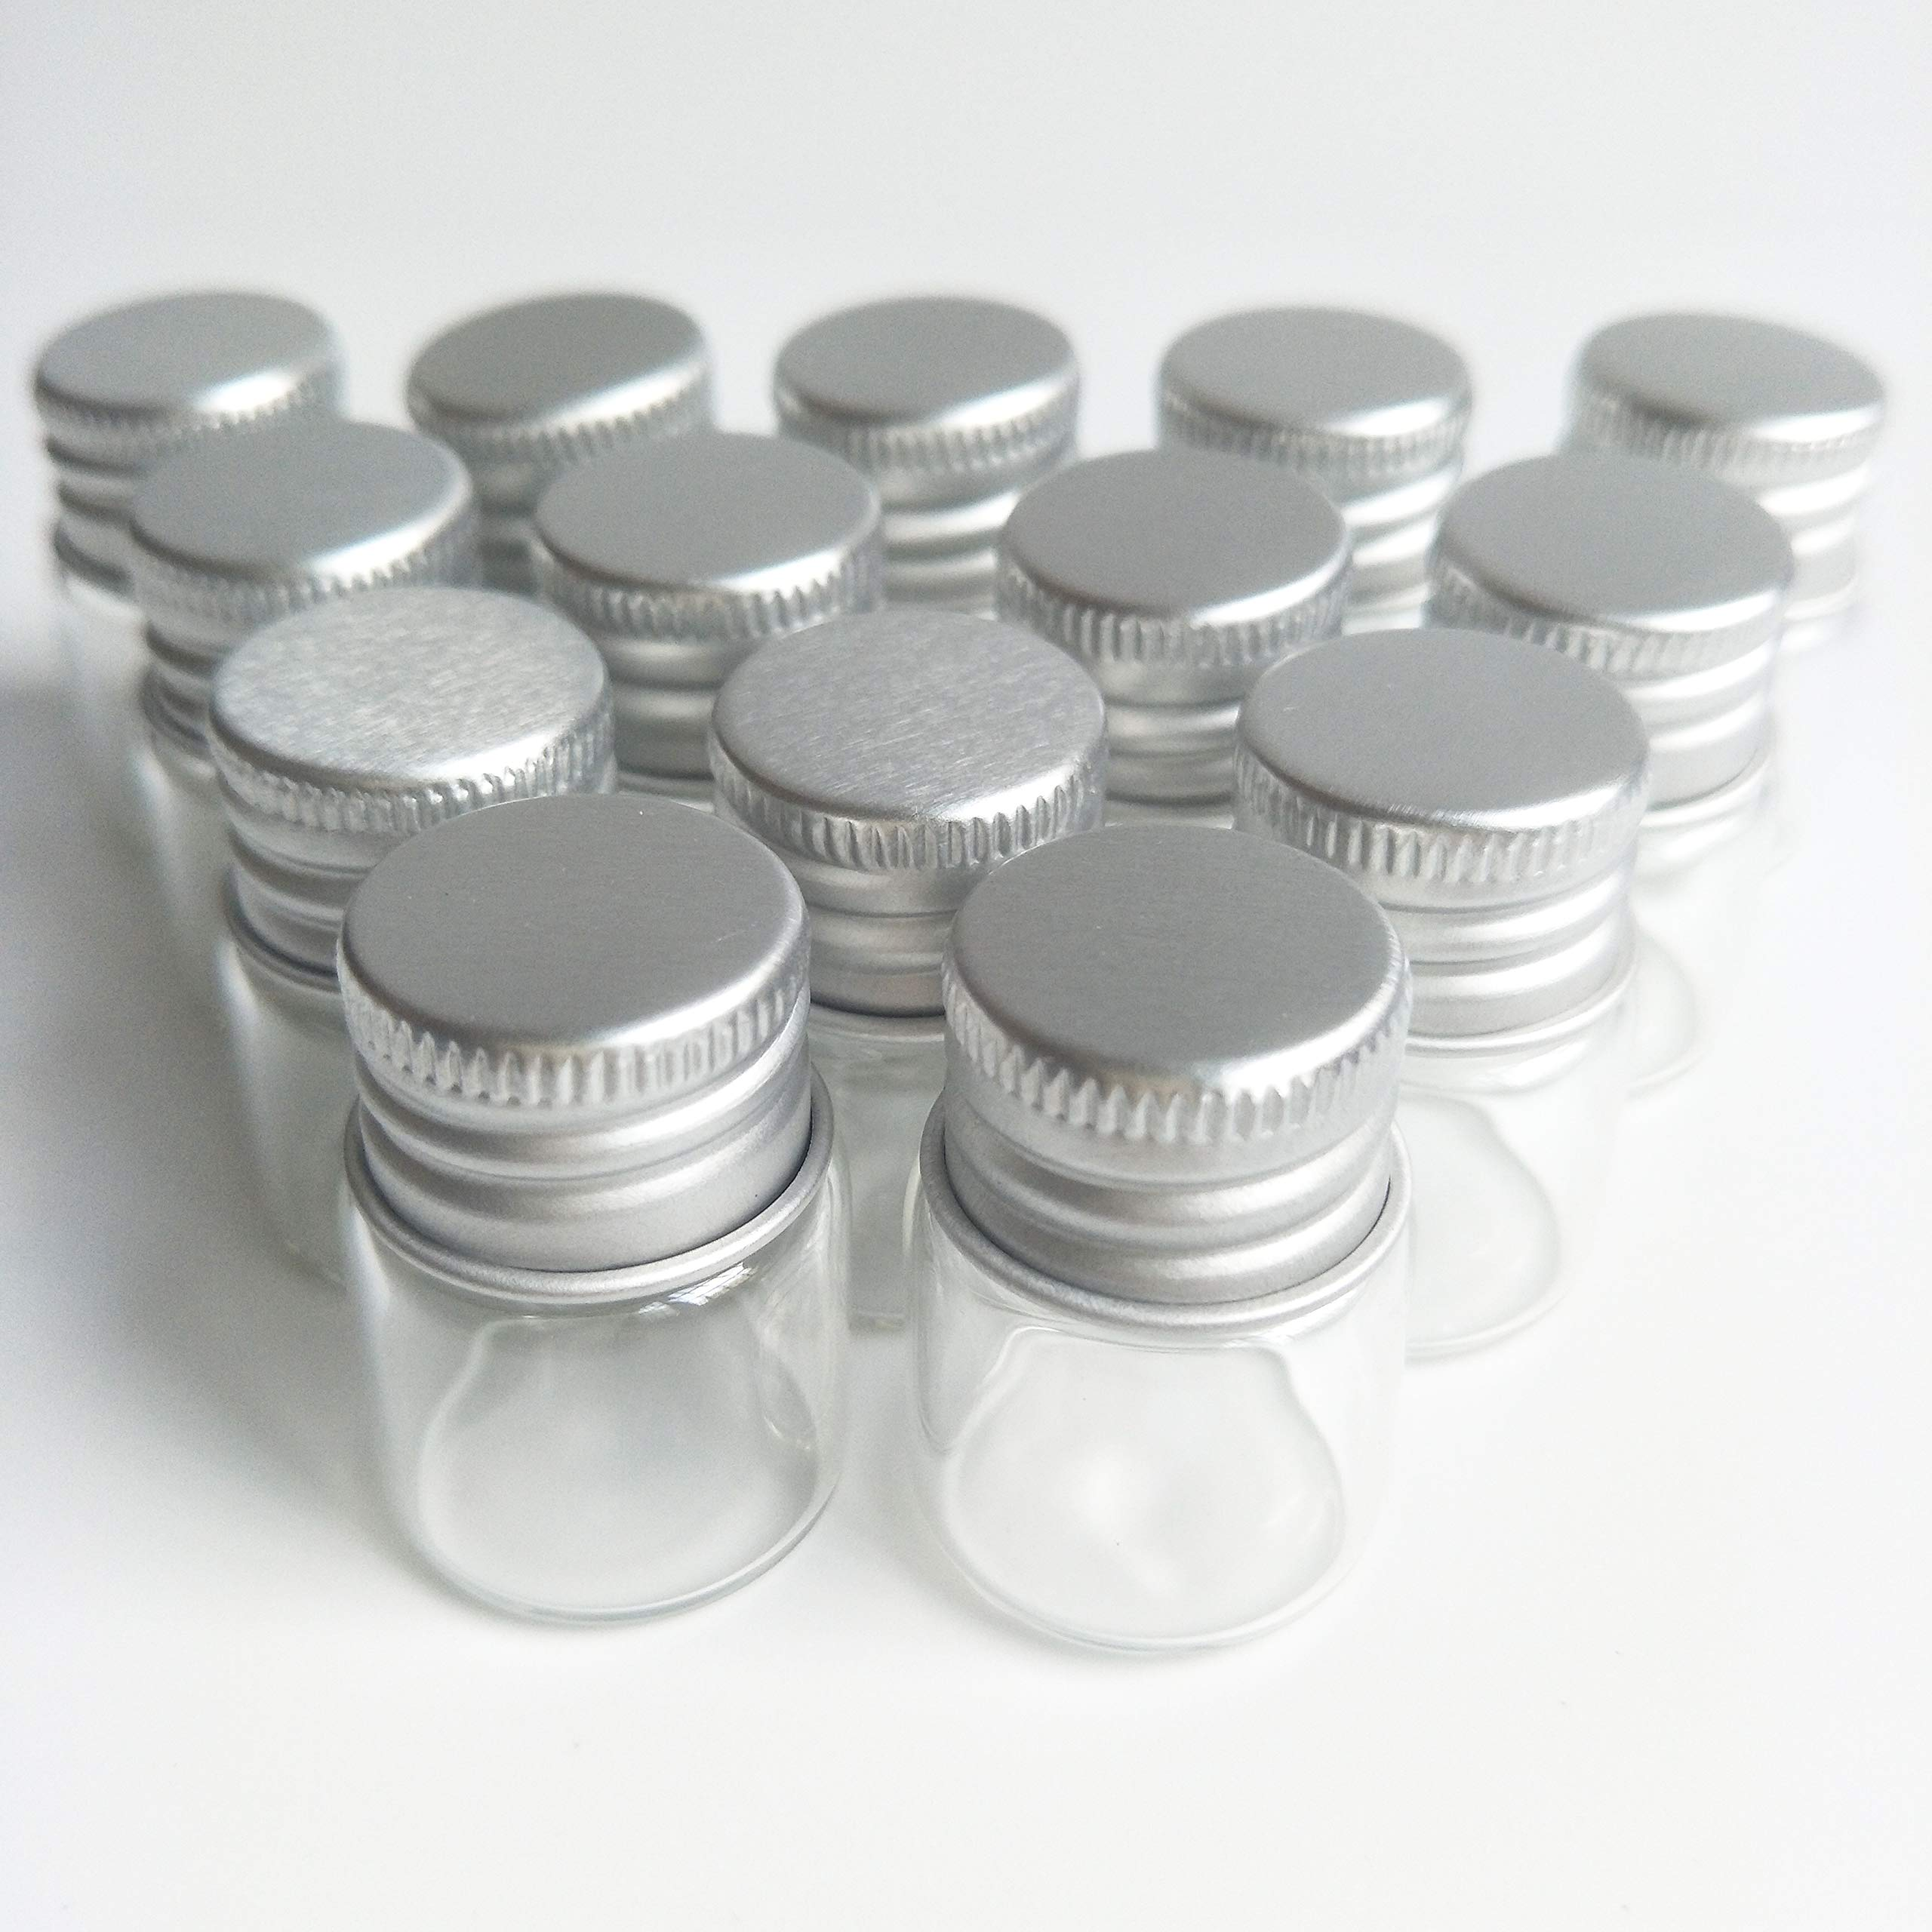 20pcs Sample Vials Clear Glass Bottles with Aluminum Caps Jars Small Bottle 5ml